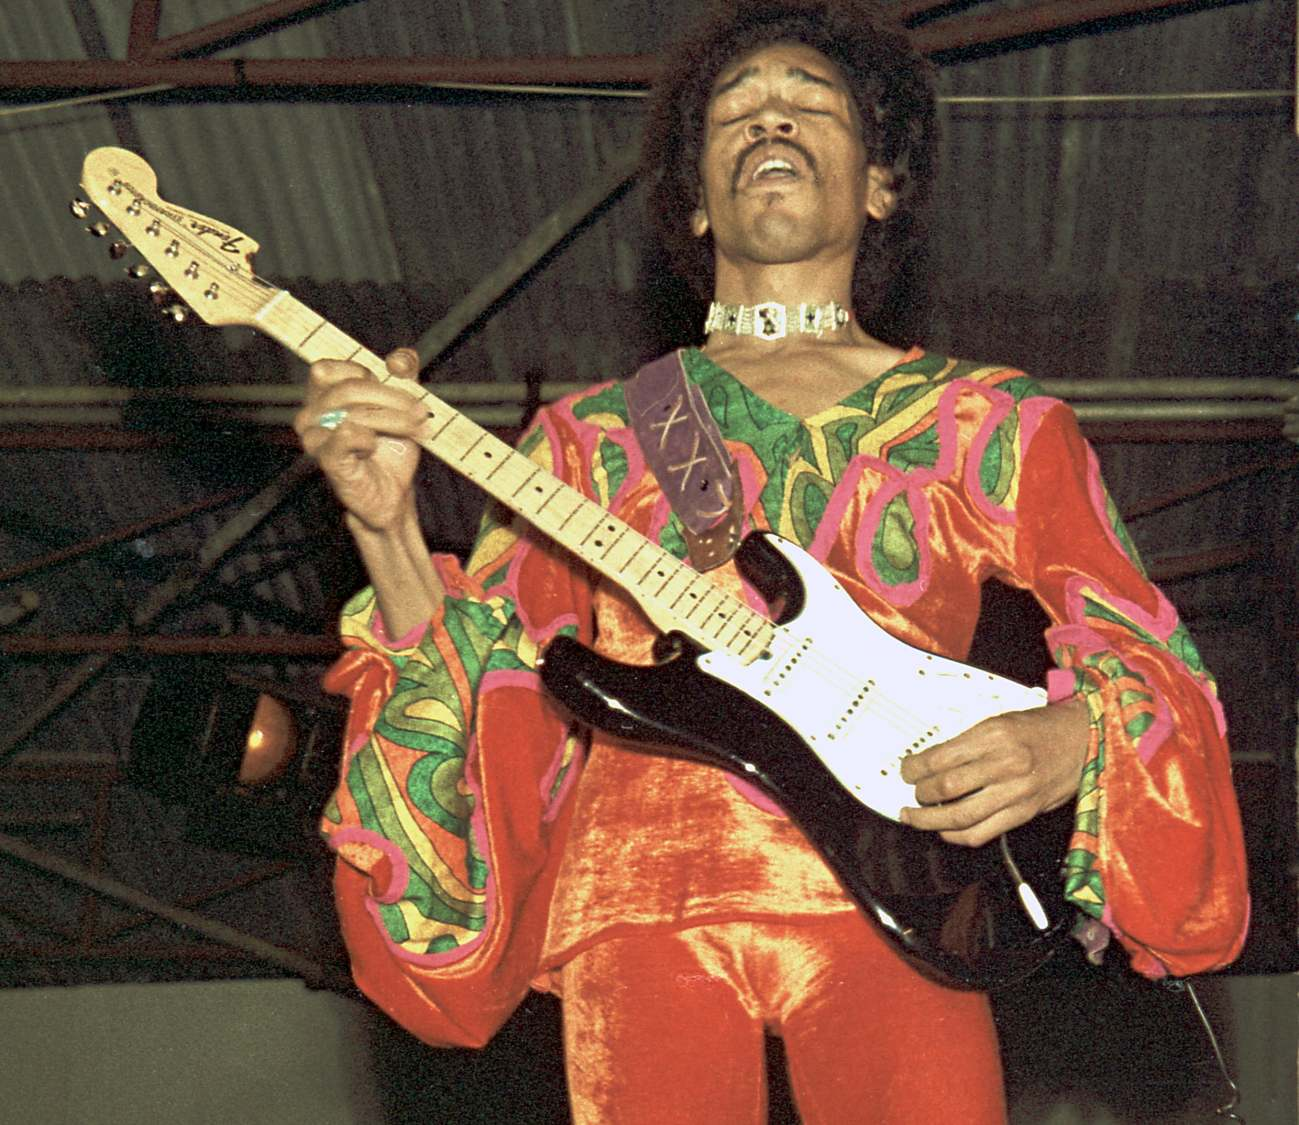 Blue Wild Angel: Jimi Hendrix Live At The Isle Of Wight (2002) - Page 2 1155c67d219bf39a682c0d471190973e